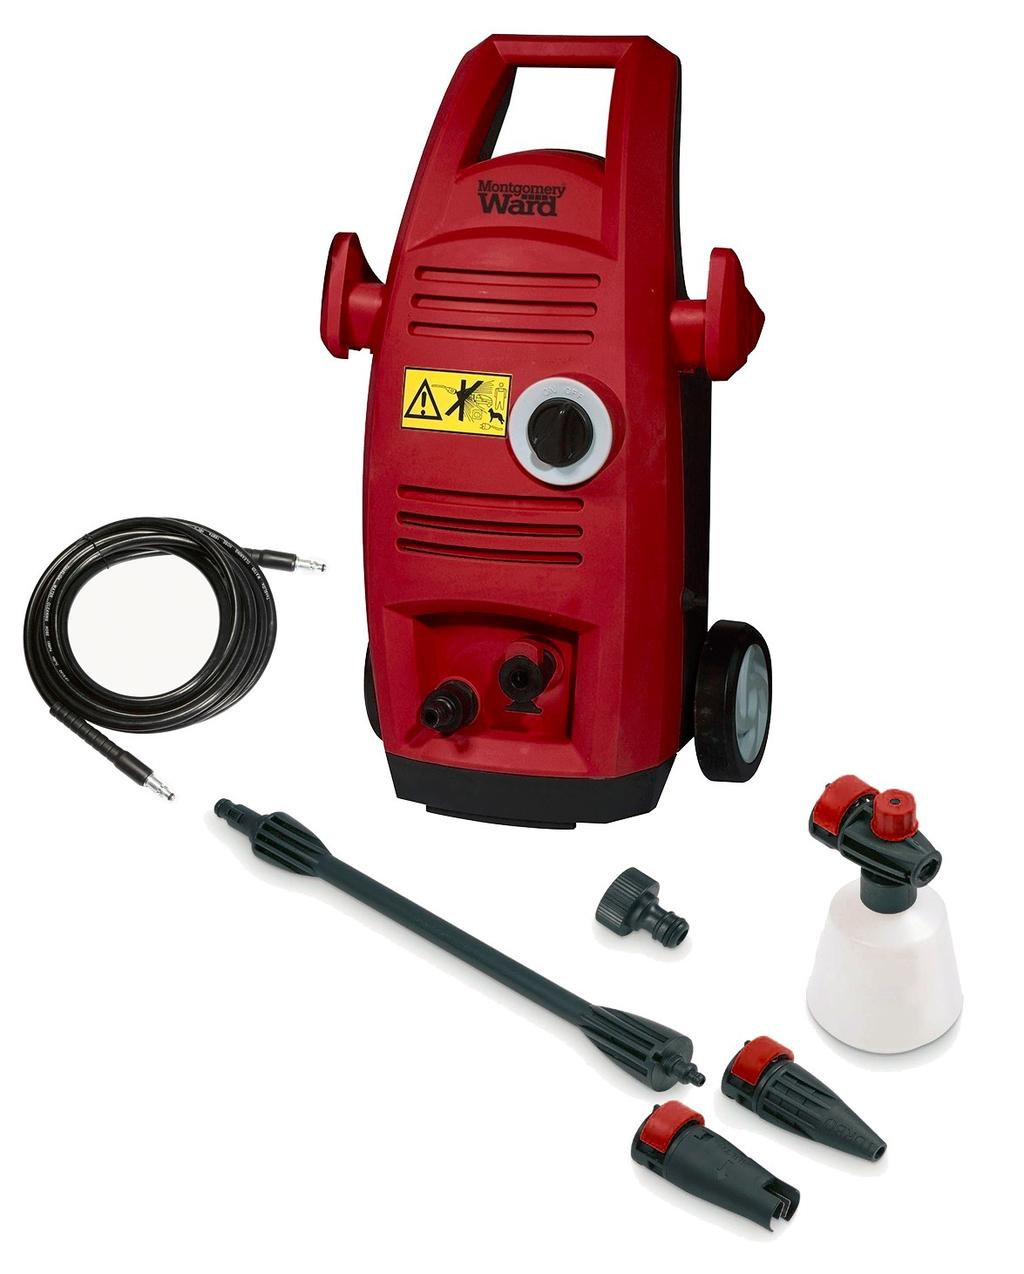 Electrical Safety Parts & Features This power tool is equipped with a polarized plug in which one prong is wider than the other. This is a safety feature to reduce the risk of electrical shock.